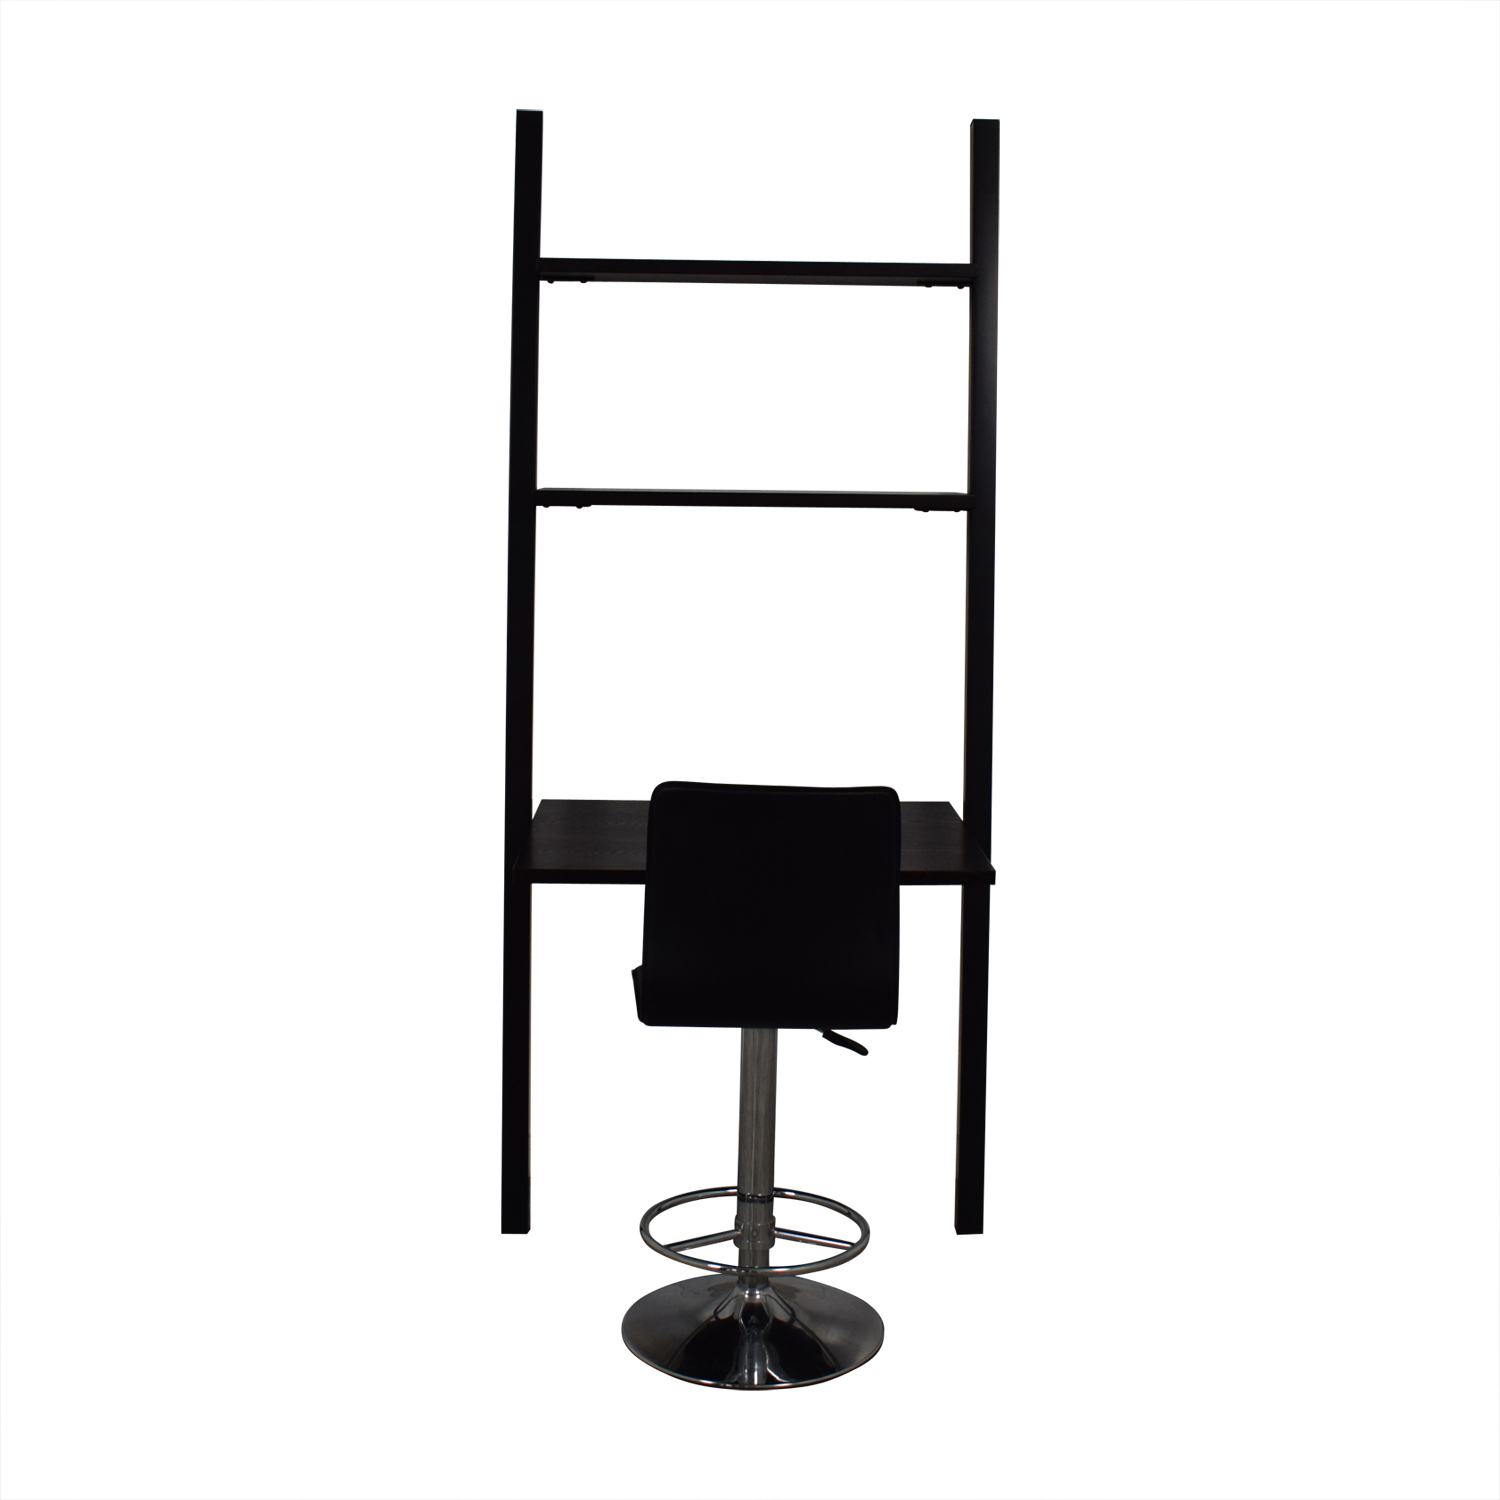 The Door Store The Door Store Ladder Shelf Desk with Modern Black Chair coupon